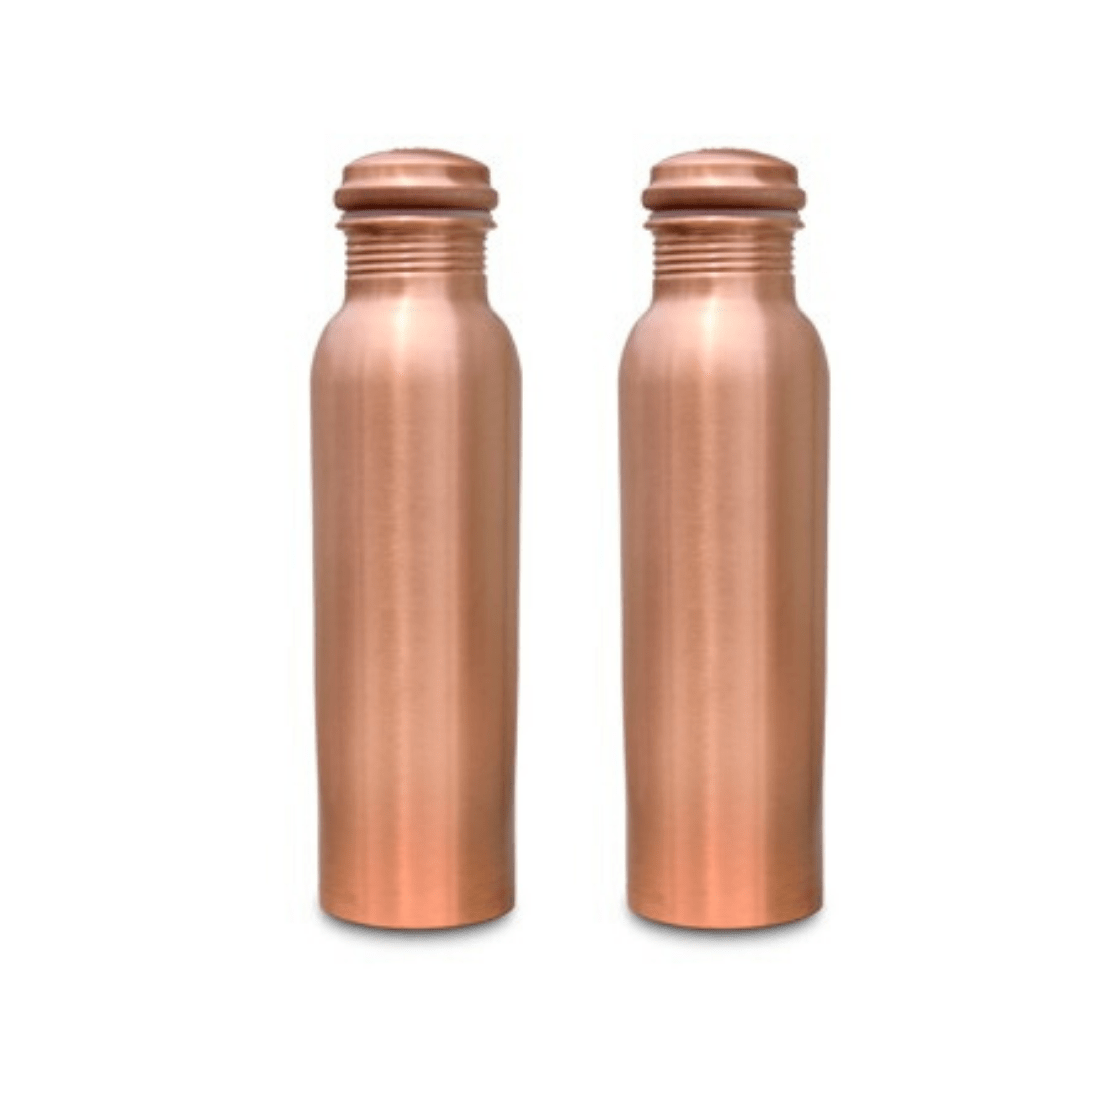 JIVA Combo of Copper Bottles (Pack of 2) at Rs.899